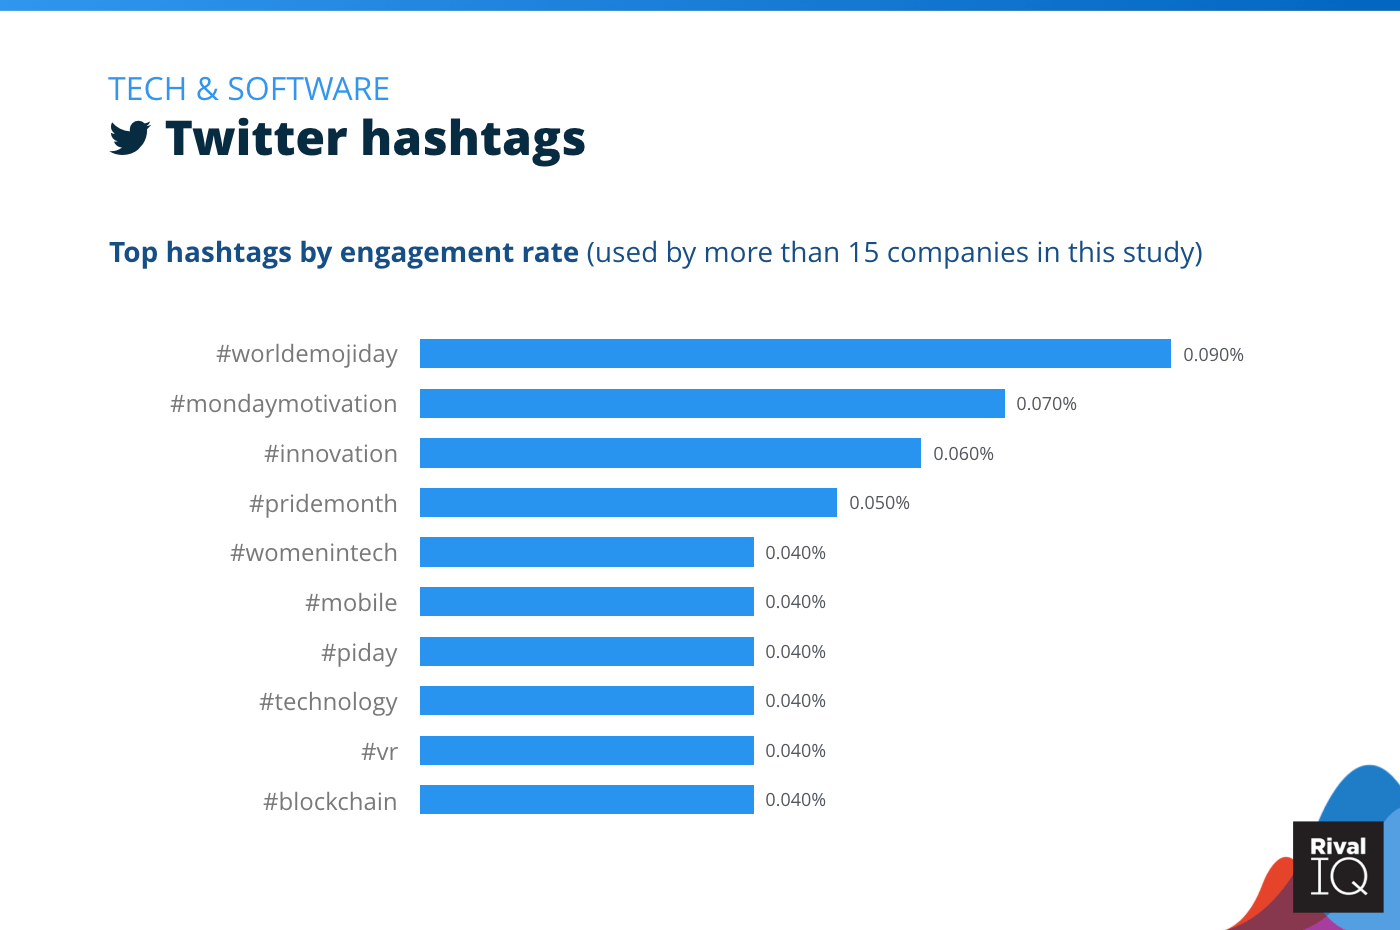 Chart of Top Twitter hashtags by engagement rate, Tech & Software